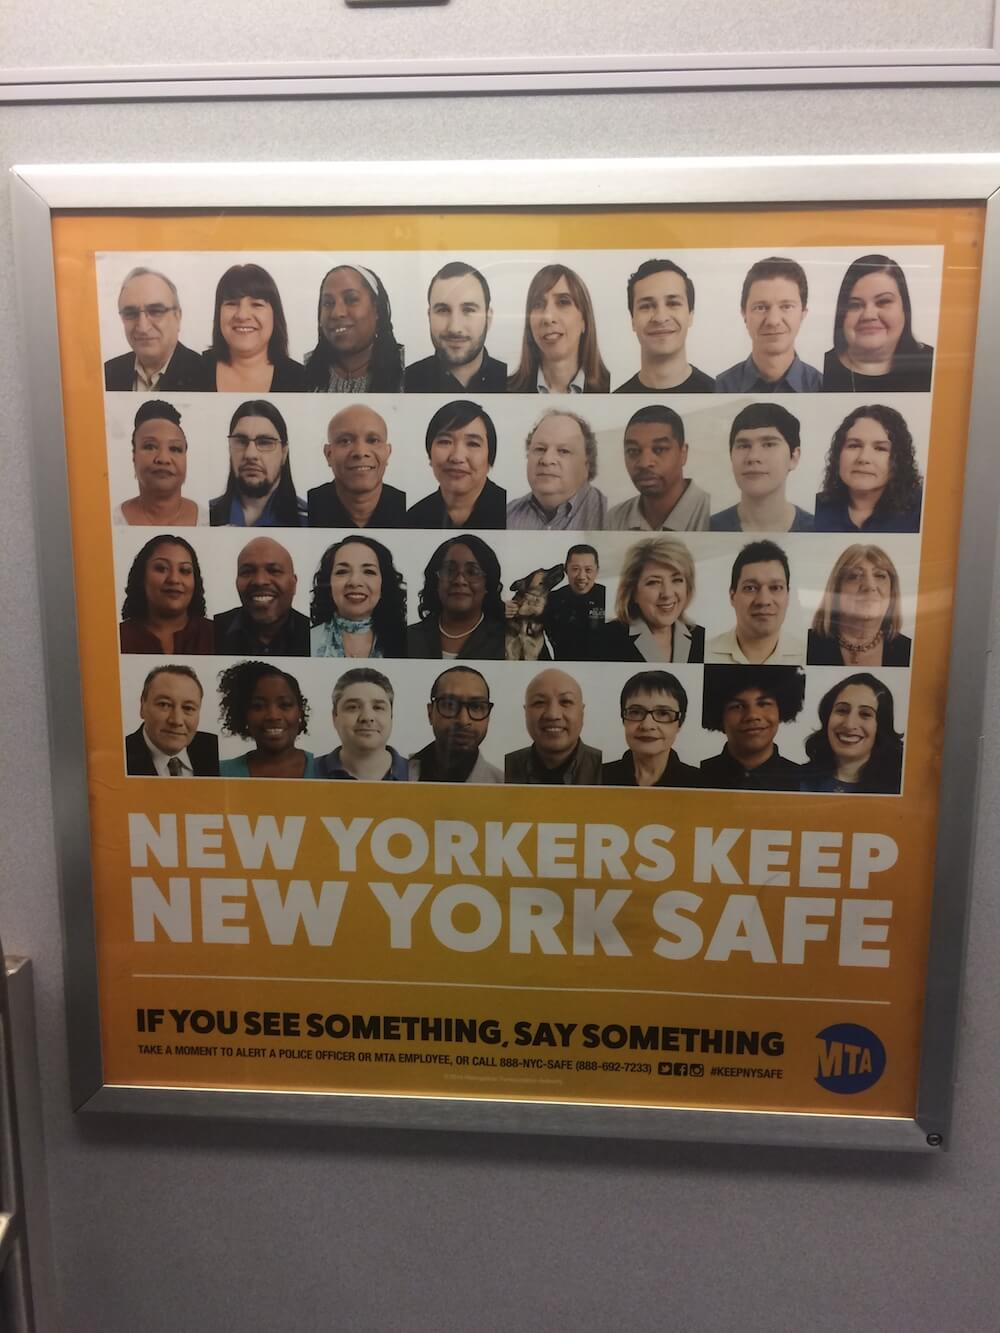 If you see something, say something. An ad in a NYC subway car.